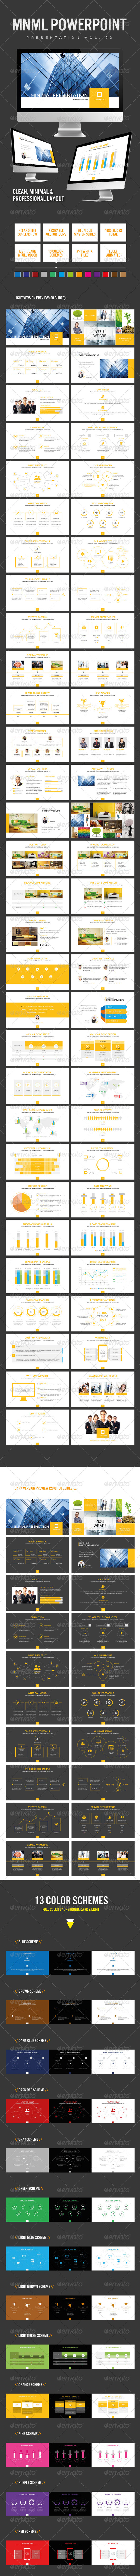 GraphicRiver Multipurpose PowerPoint Presentation Vol 02 6699062